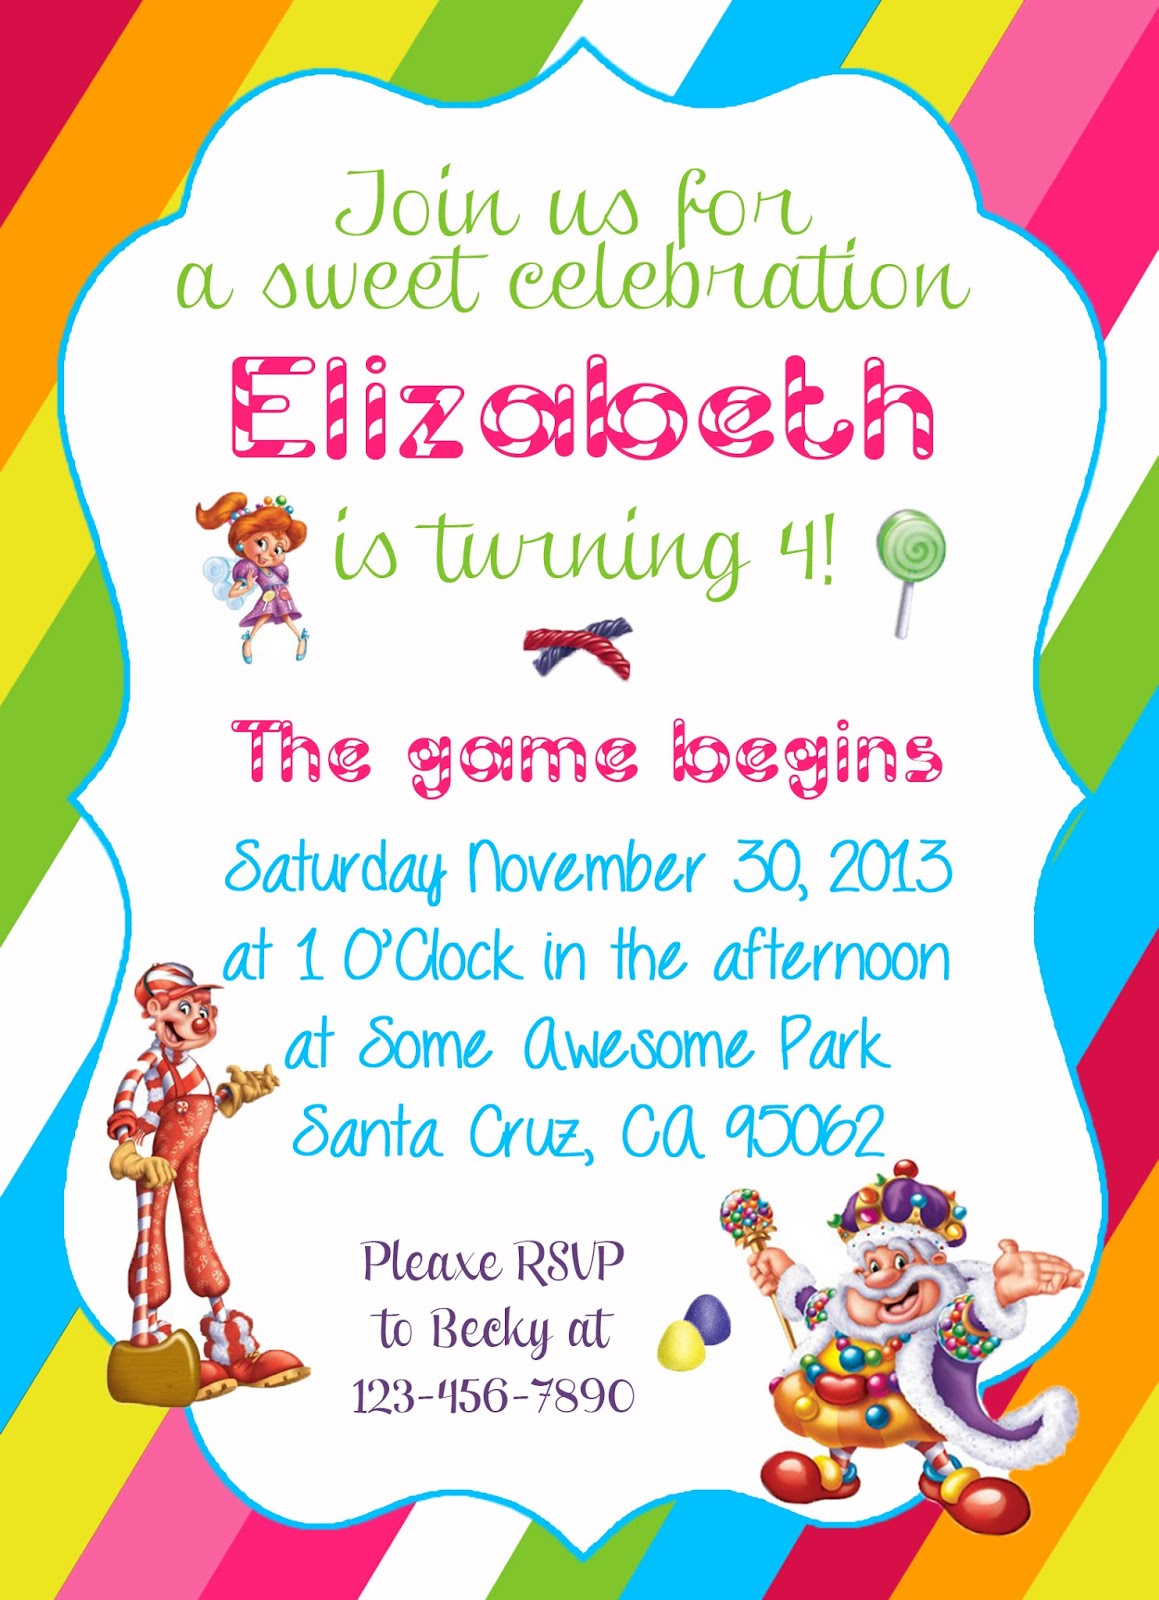 diy design den candyland themed party printable invitation candyland themed party printable invitation and diy banners